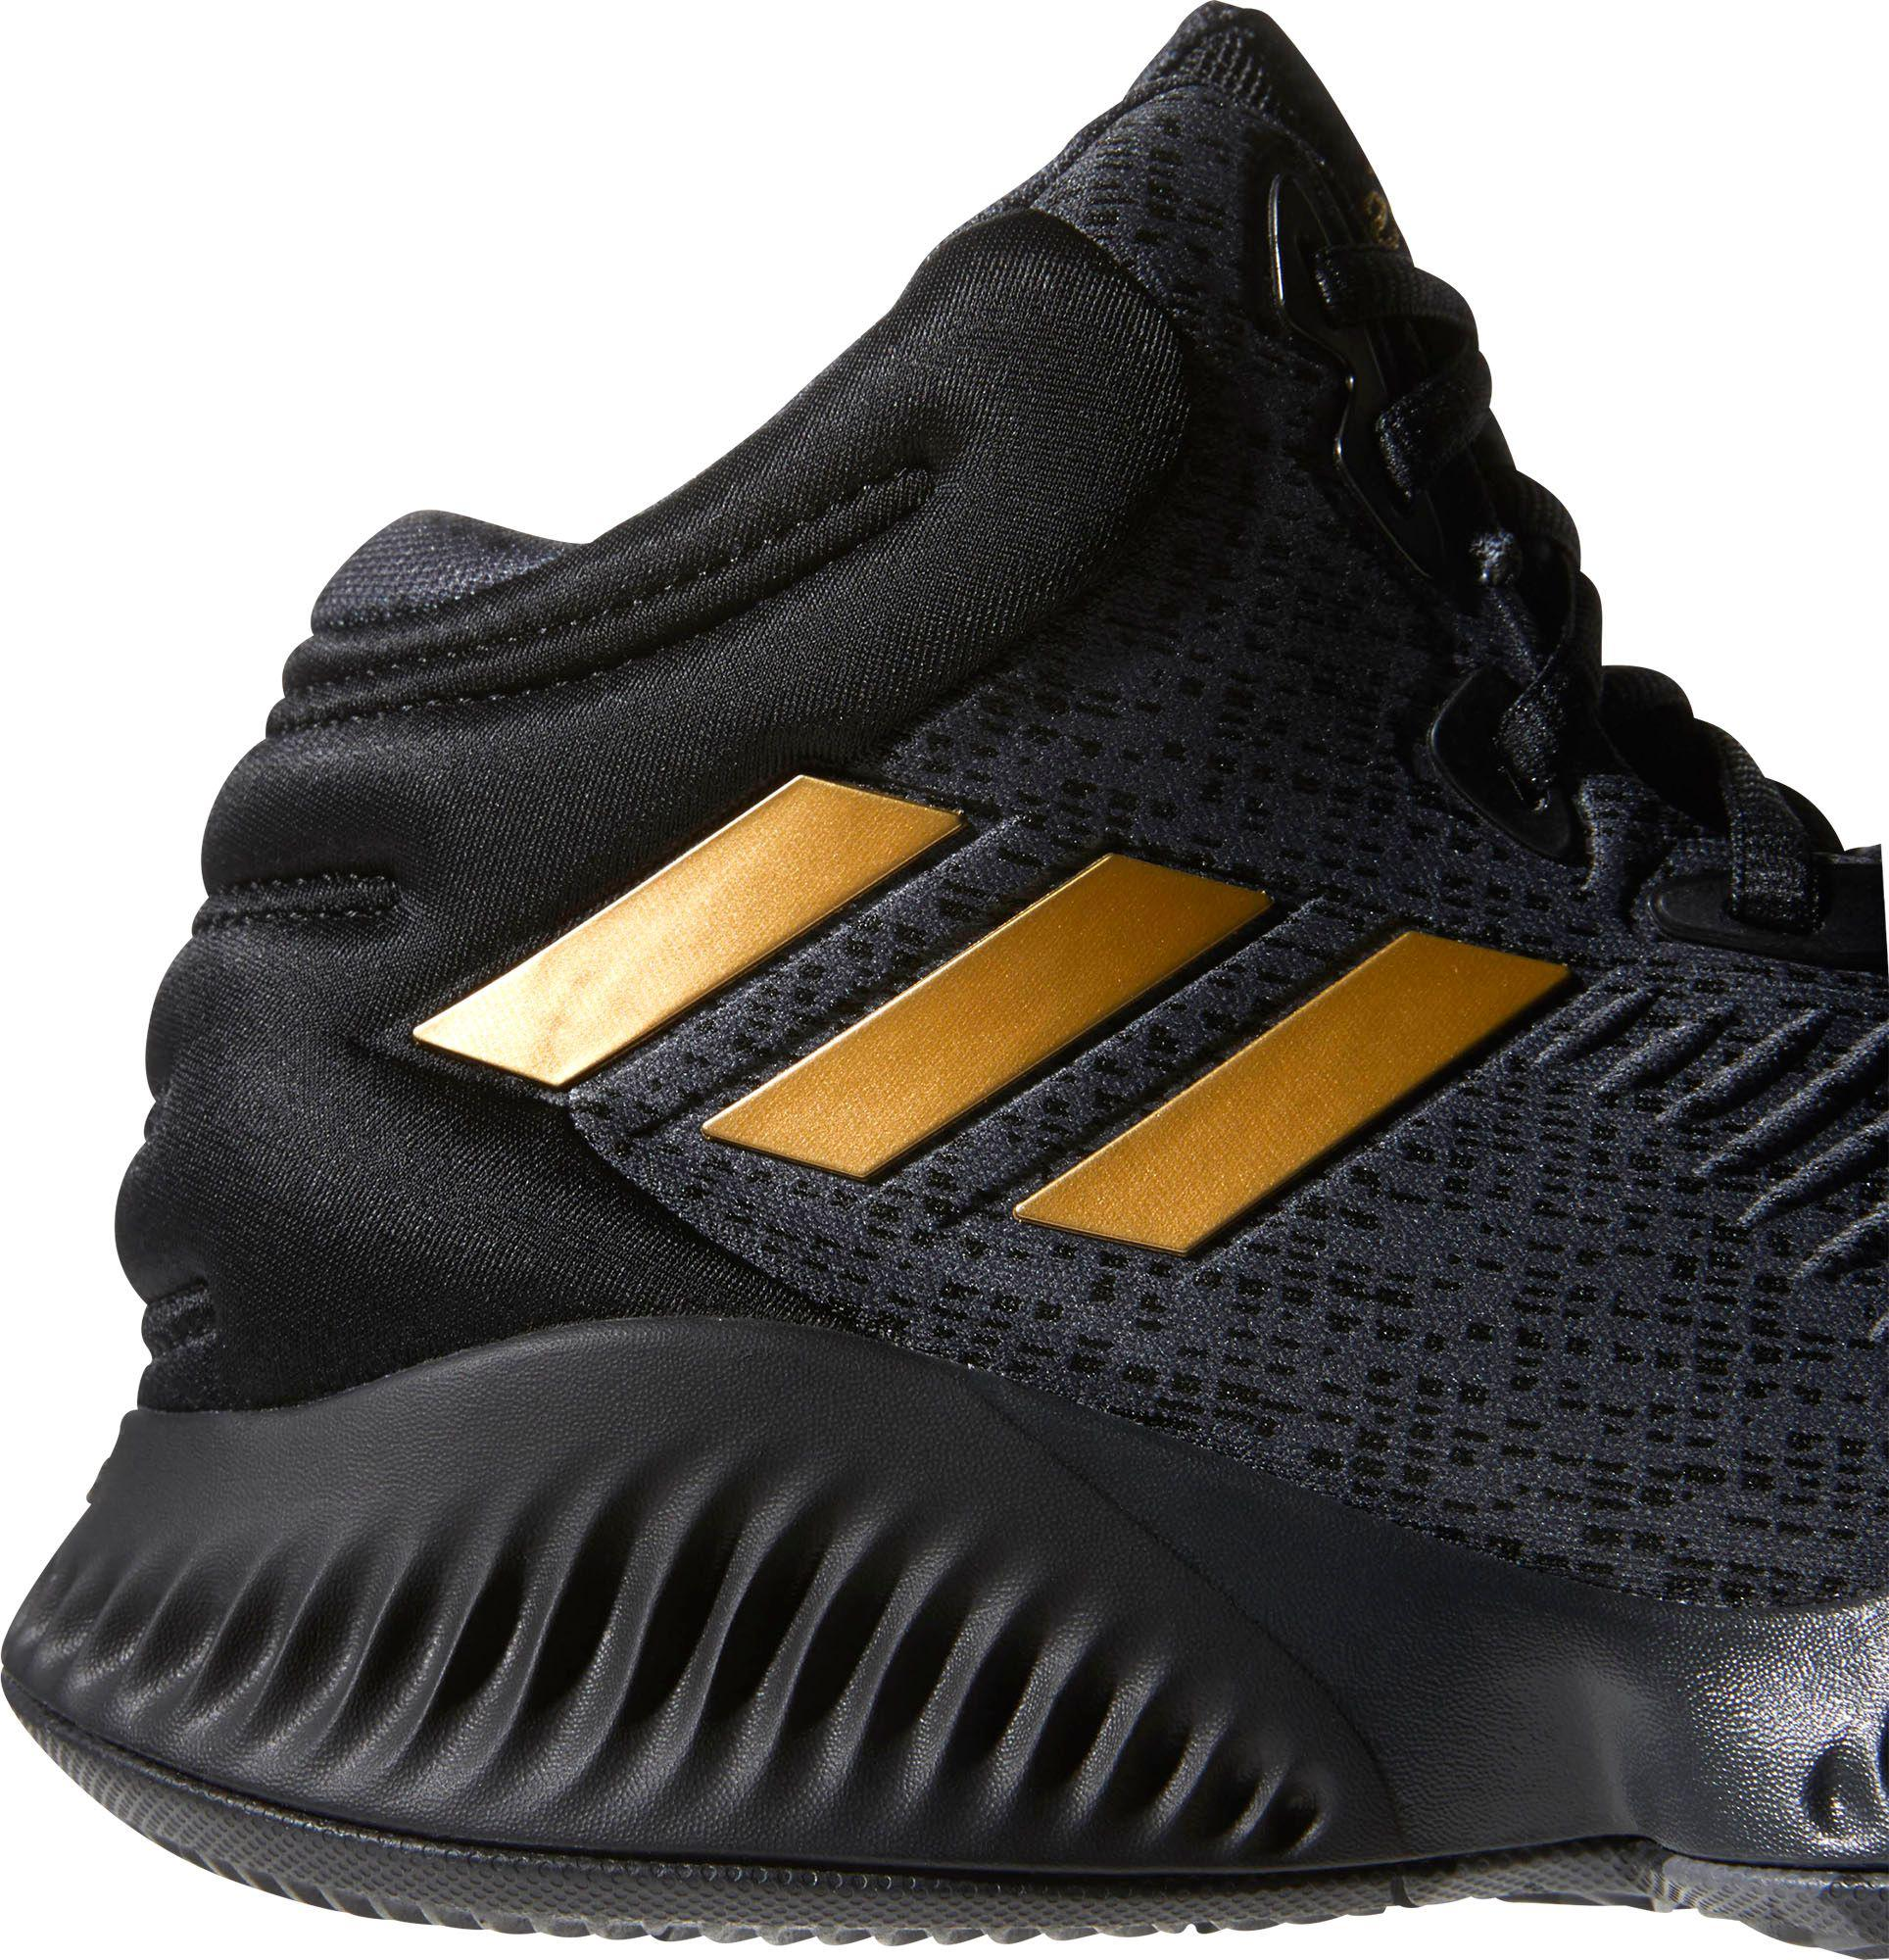 737a47e16e5e adidas Mad Bounce 2018 Basketball Shoes in Black for Men - Lyst